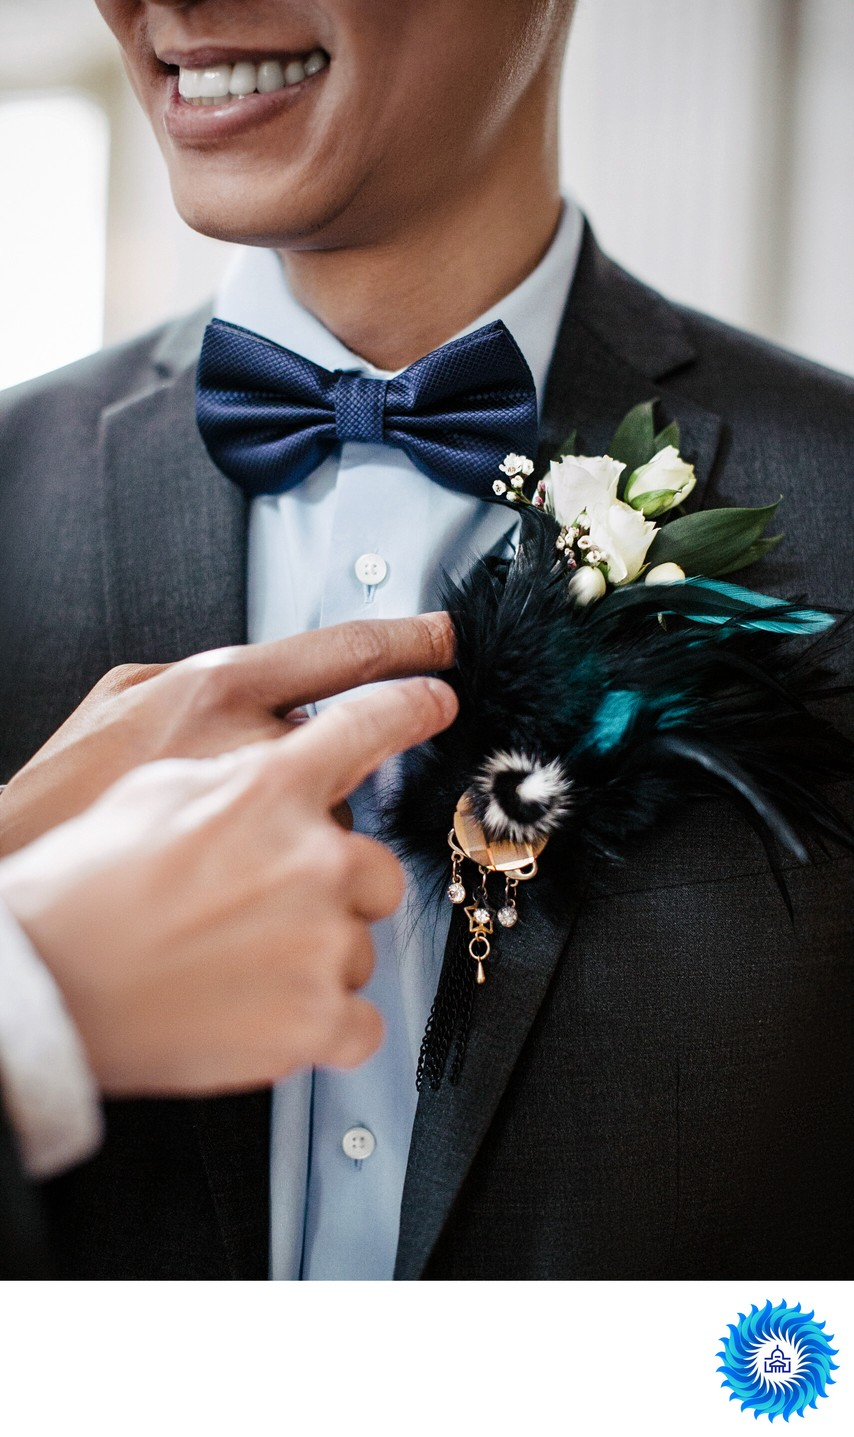 SF City Hall's groom boutonniere